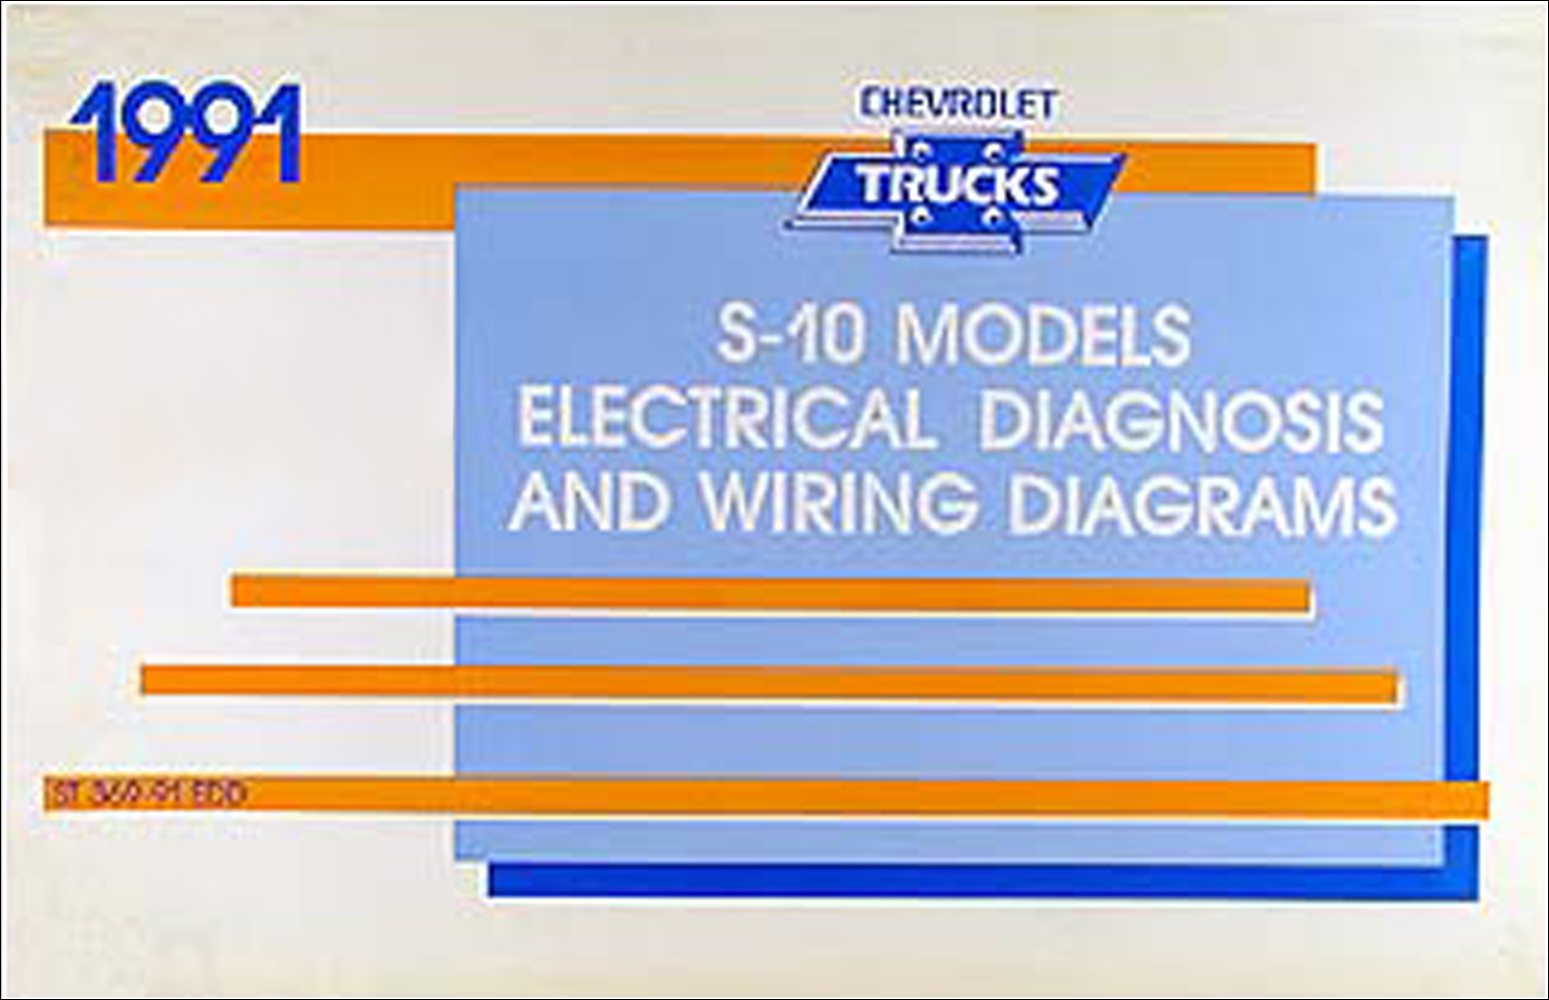 1991 Chevy S 10 Wiring Diagram Trusted For 2000 Chevrolet Pickup Blazer Manual Original S10 Pick Up